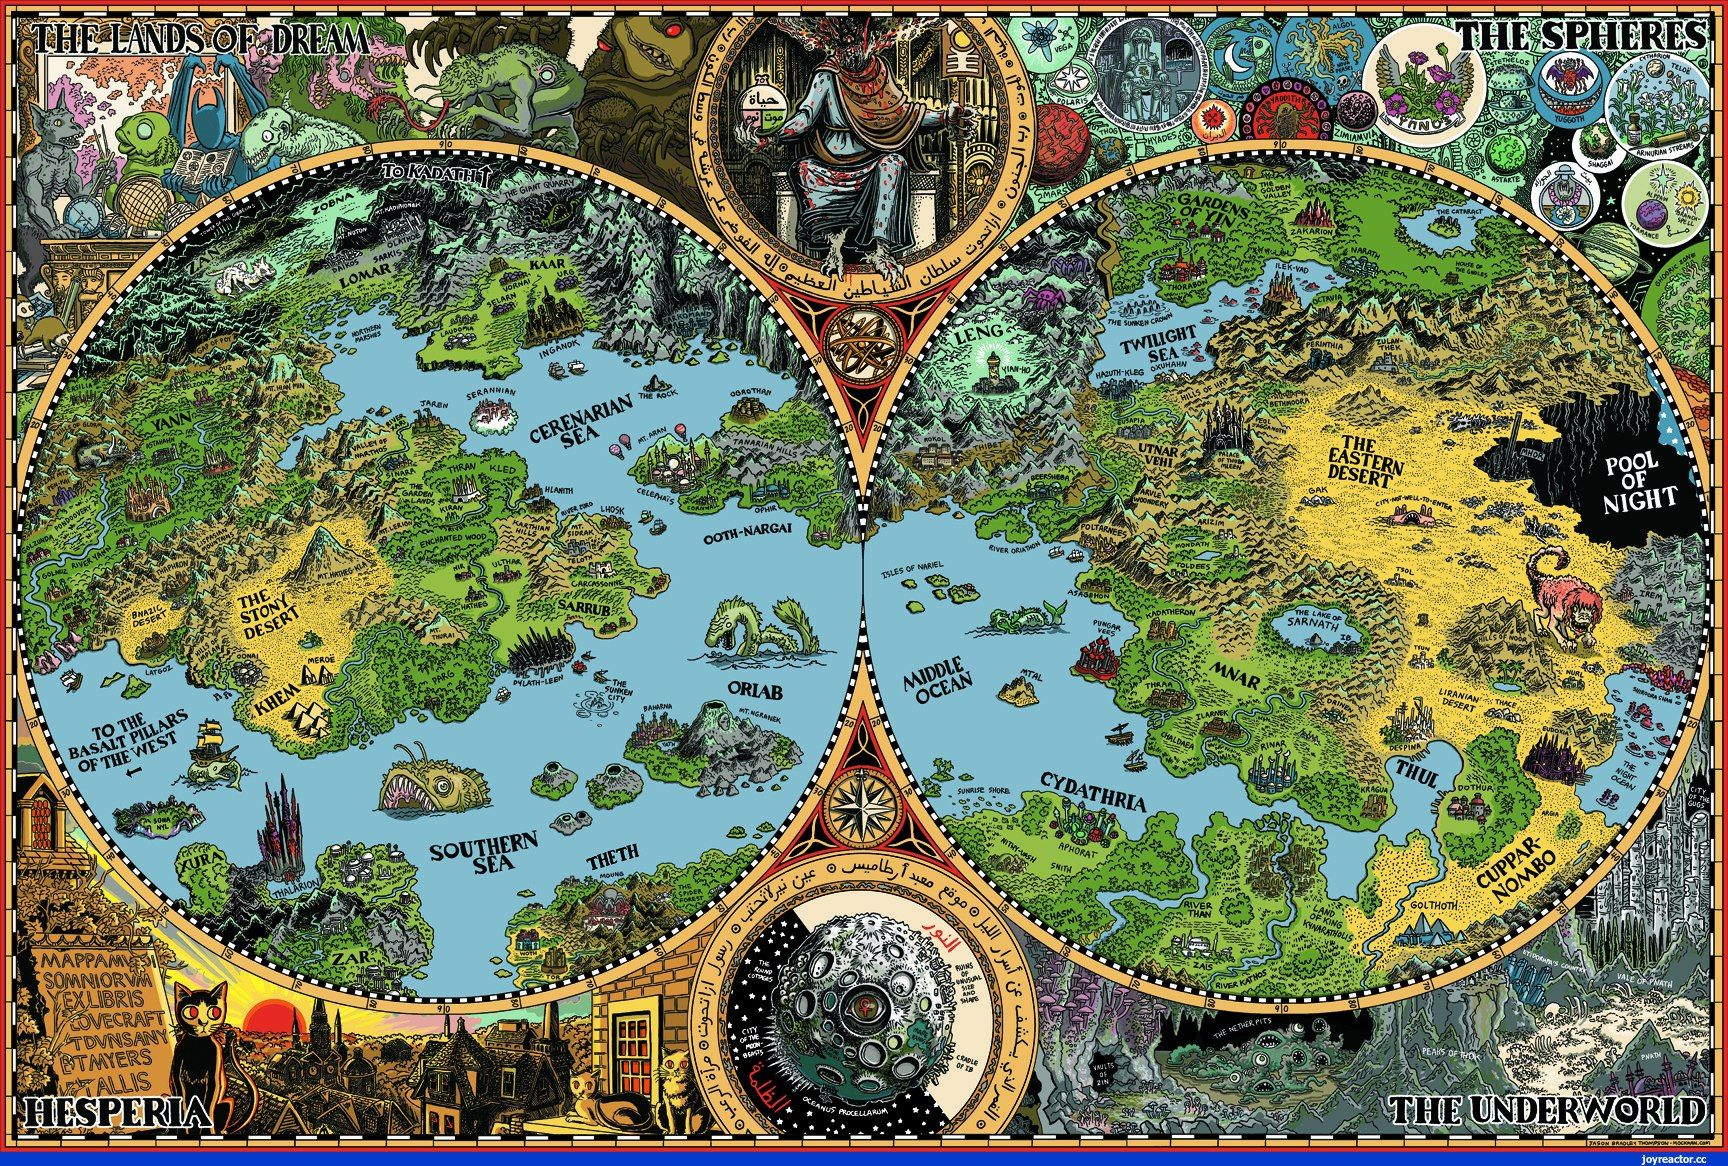 The Lands Of Dream Map of the Dreamlands (Credit- Mockman ... on alexandria map, eclipse map, love map, america map, fiction map,